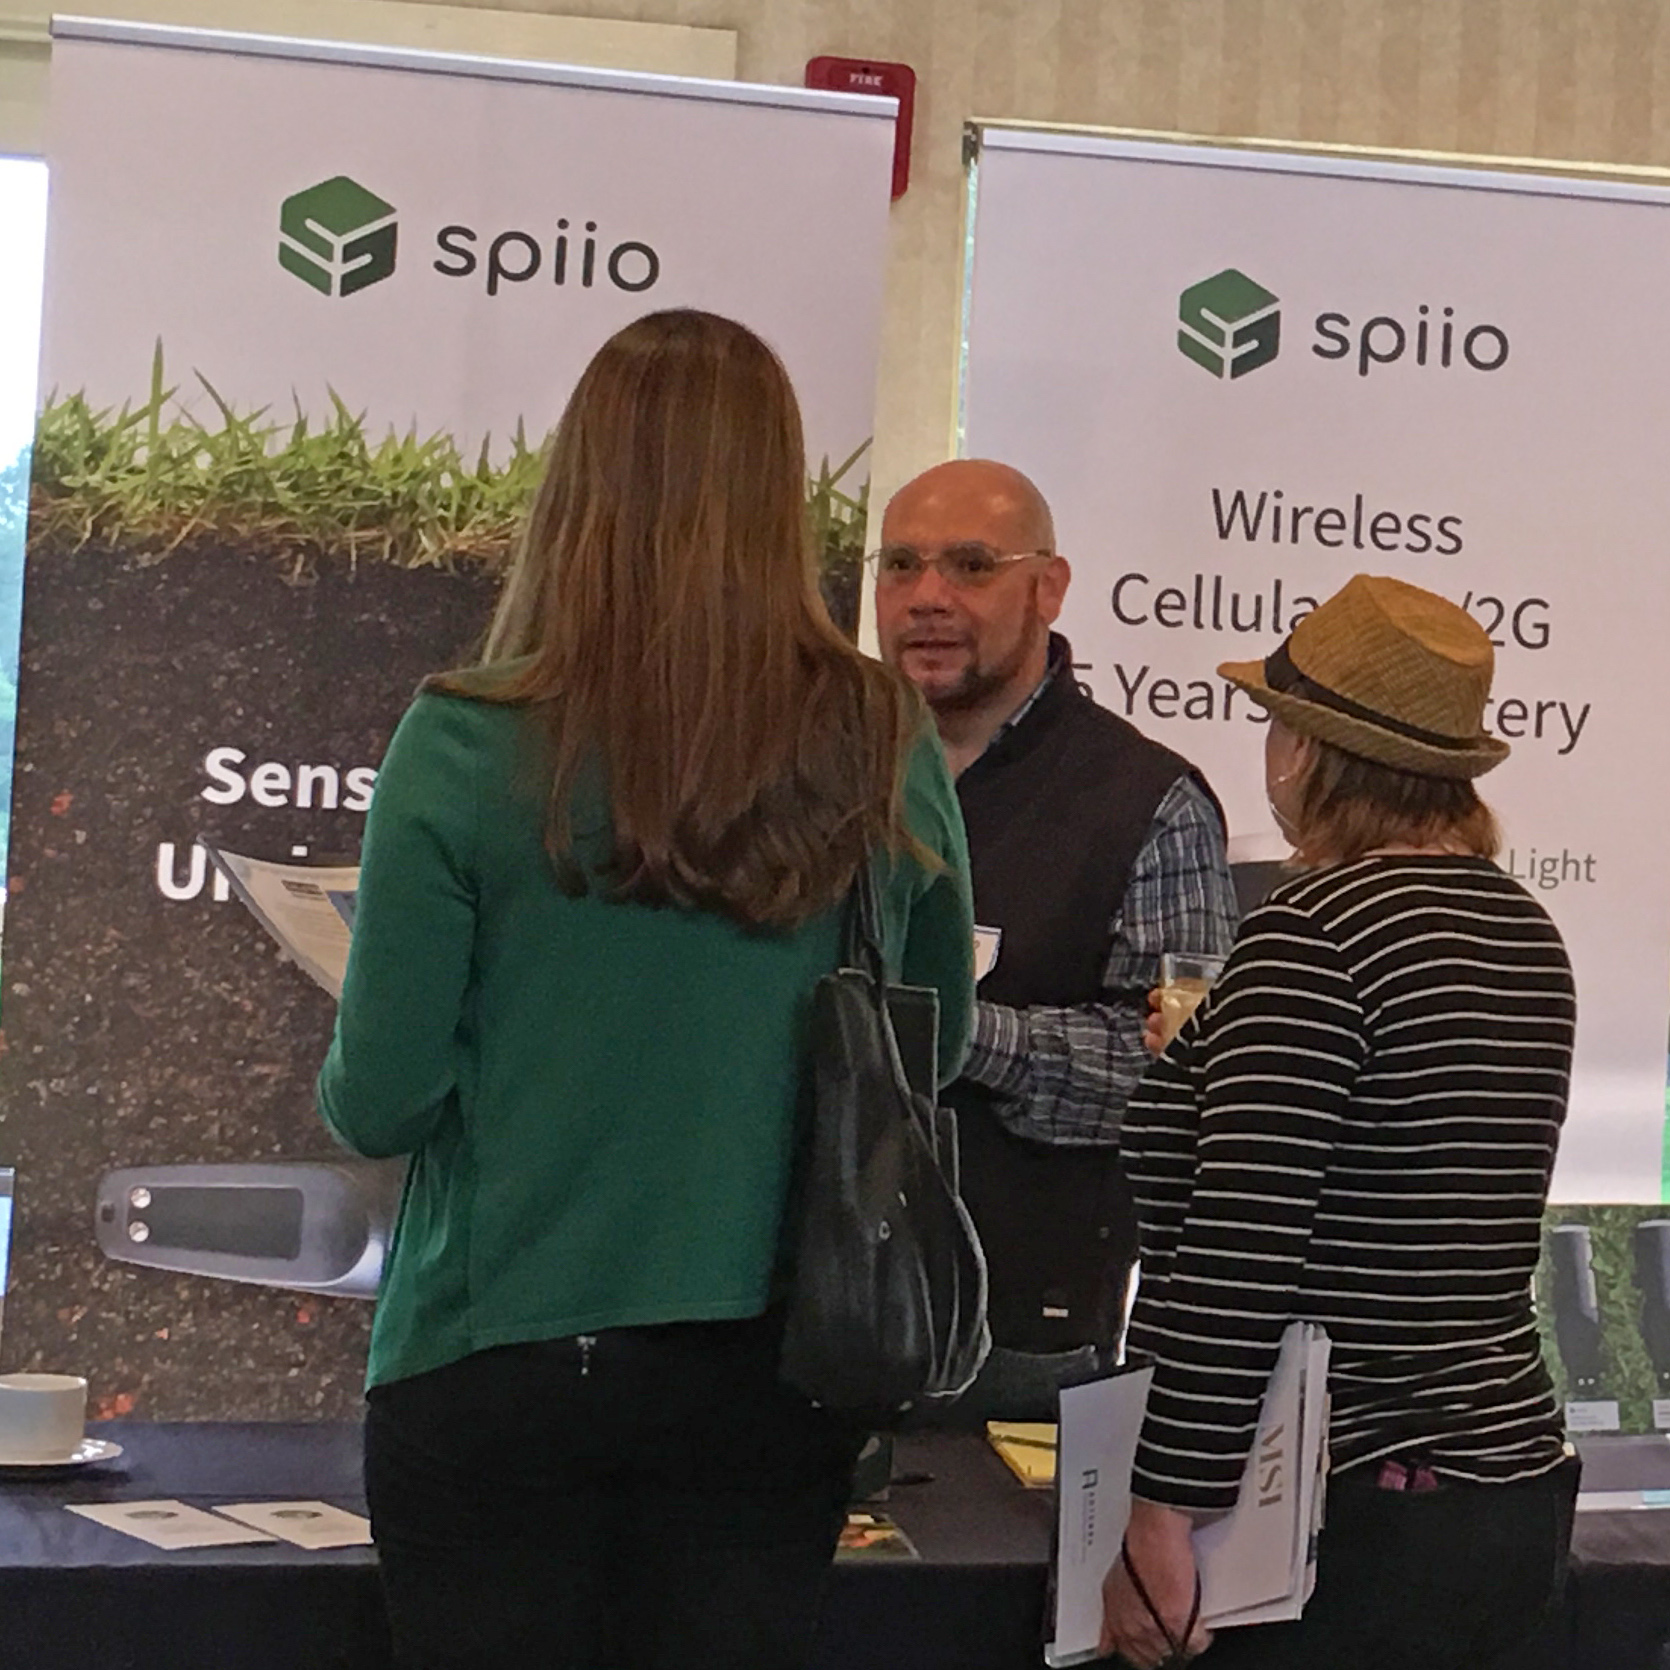 Ramon Rodriguez, explaining Spiio's Irrigation System with wireless moisture sensors